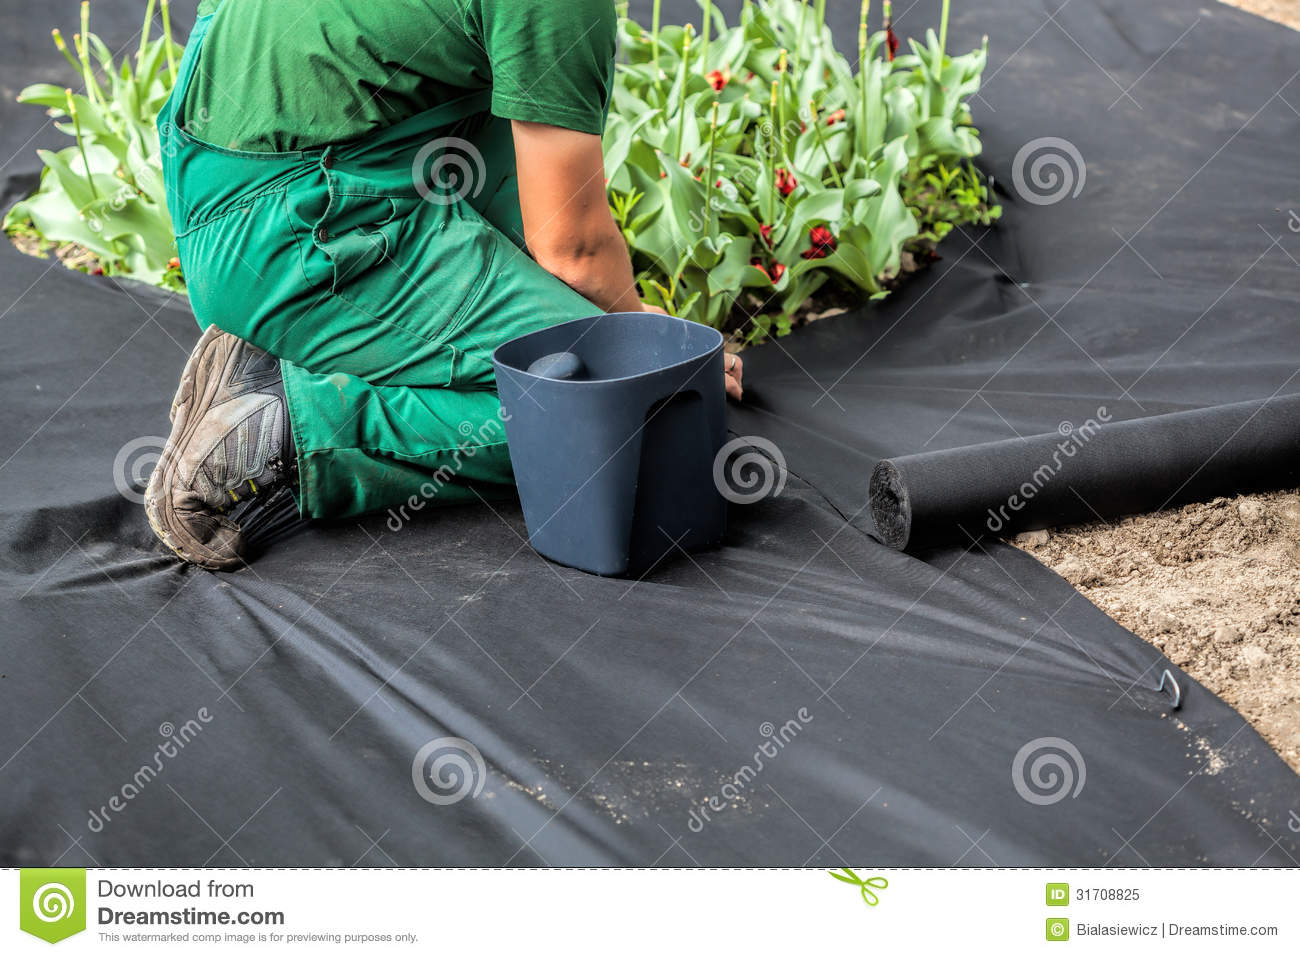 Design Weed Barrier weed barrier stock photo image 25178630 more similar images of barrier